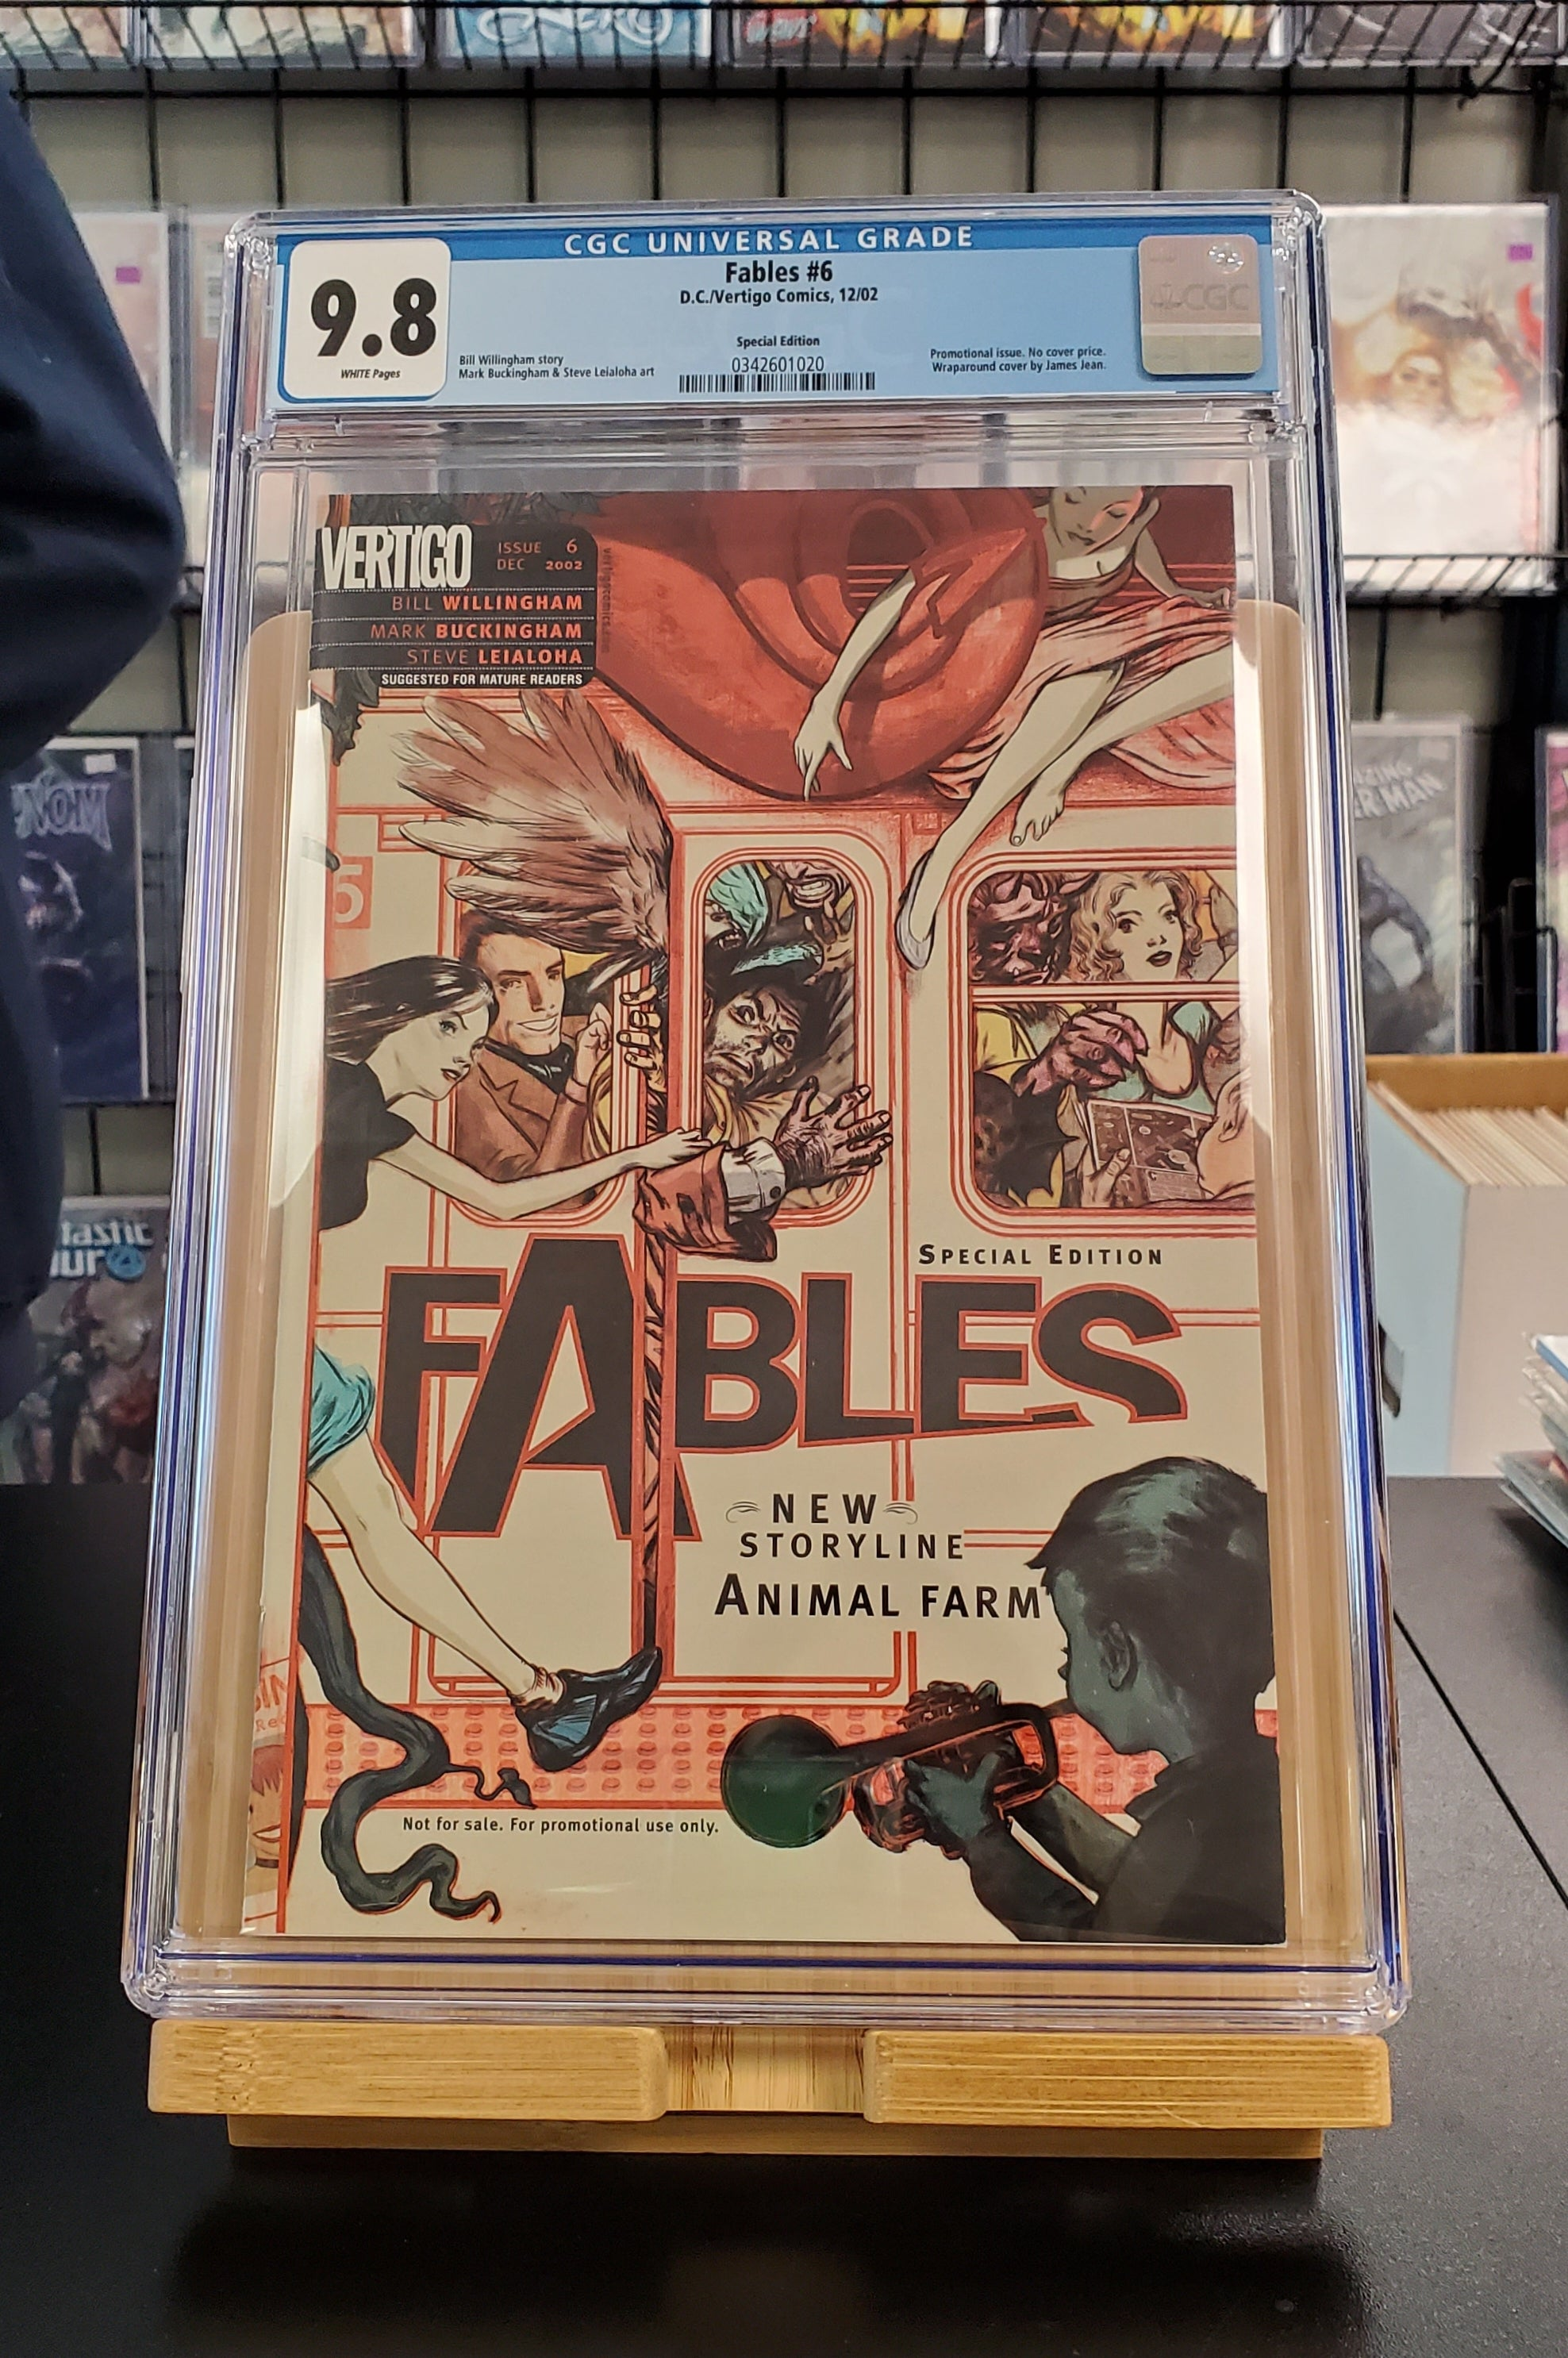 9.8 CGC FABLES #6 SPECIAL PROMOTIONAL EDITION WRAPAROUND 2002